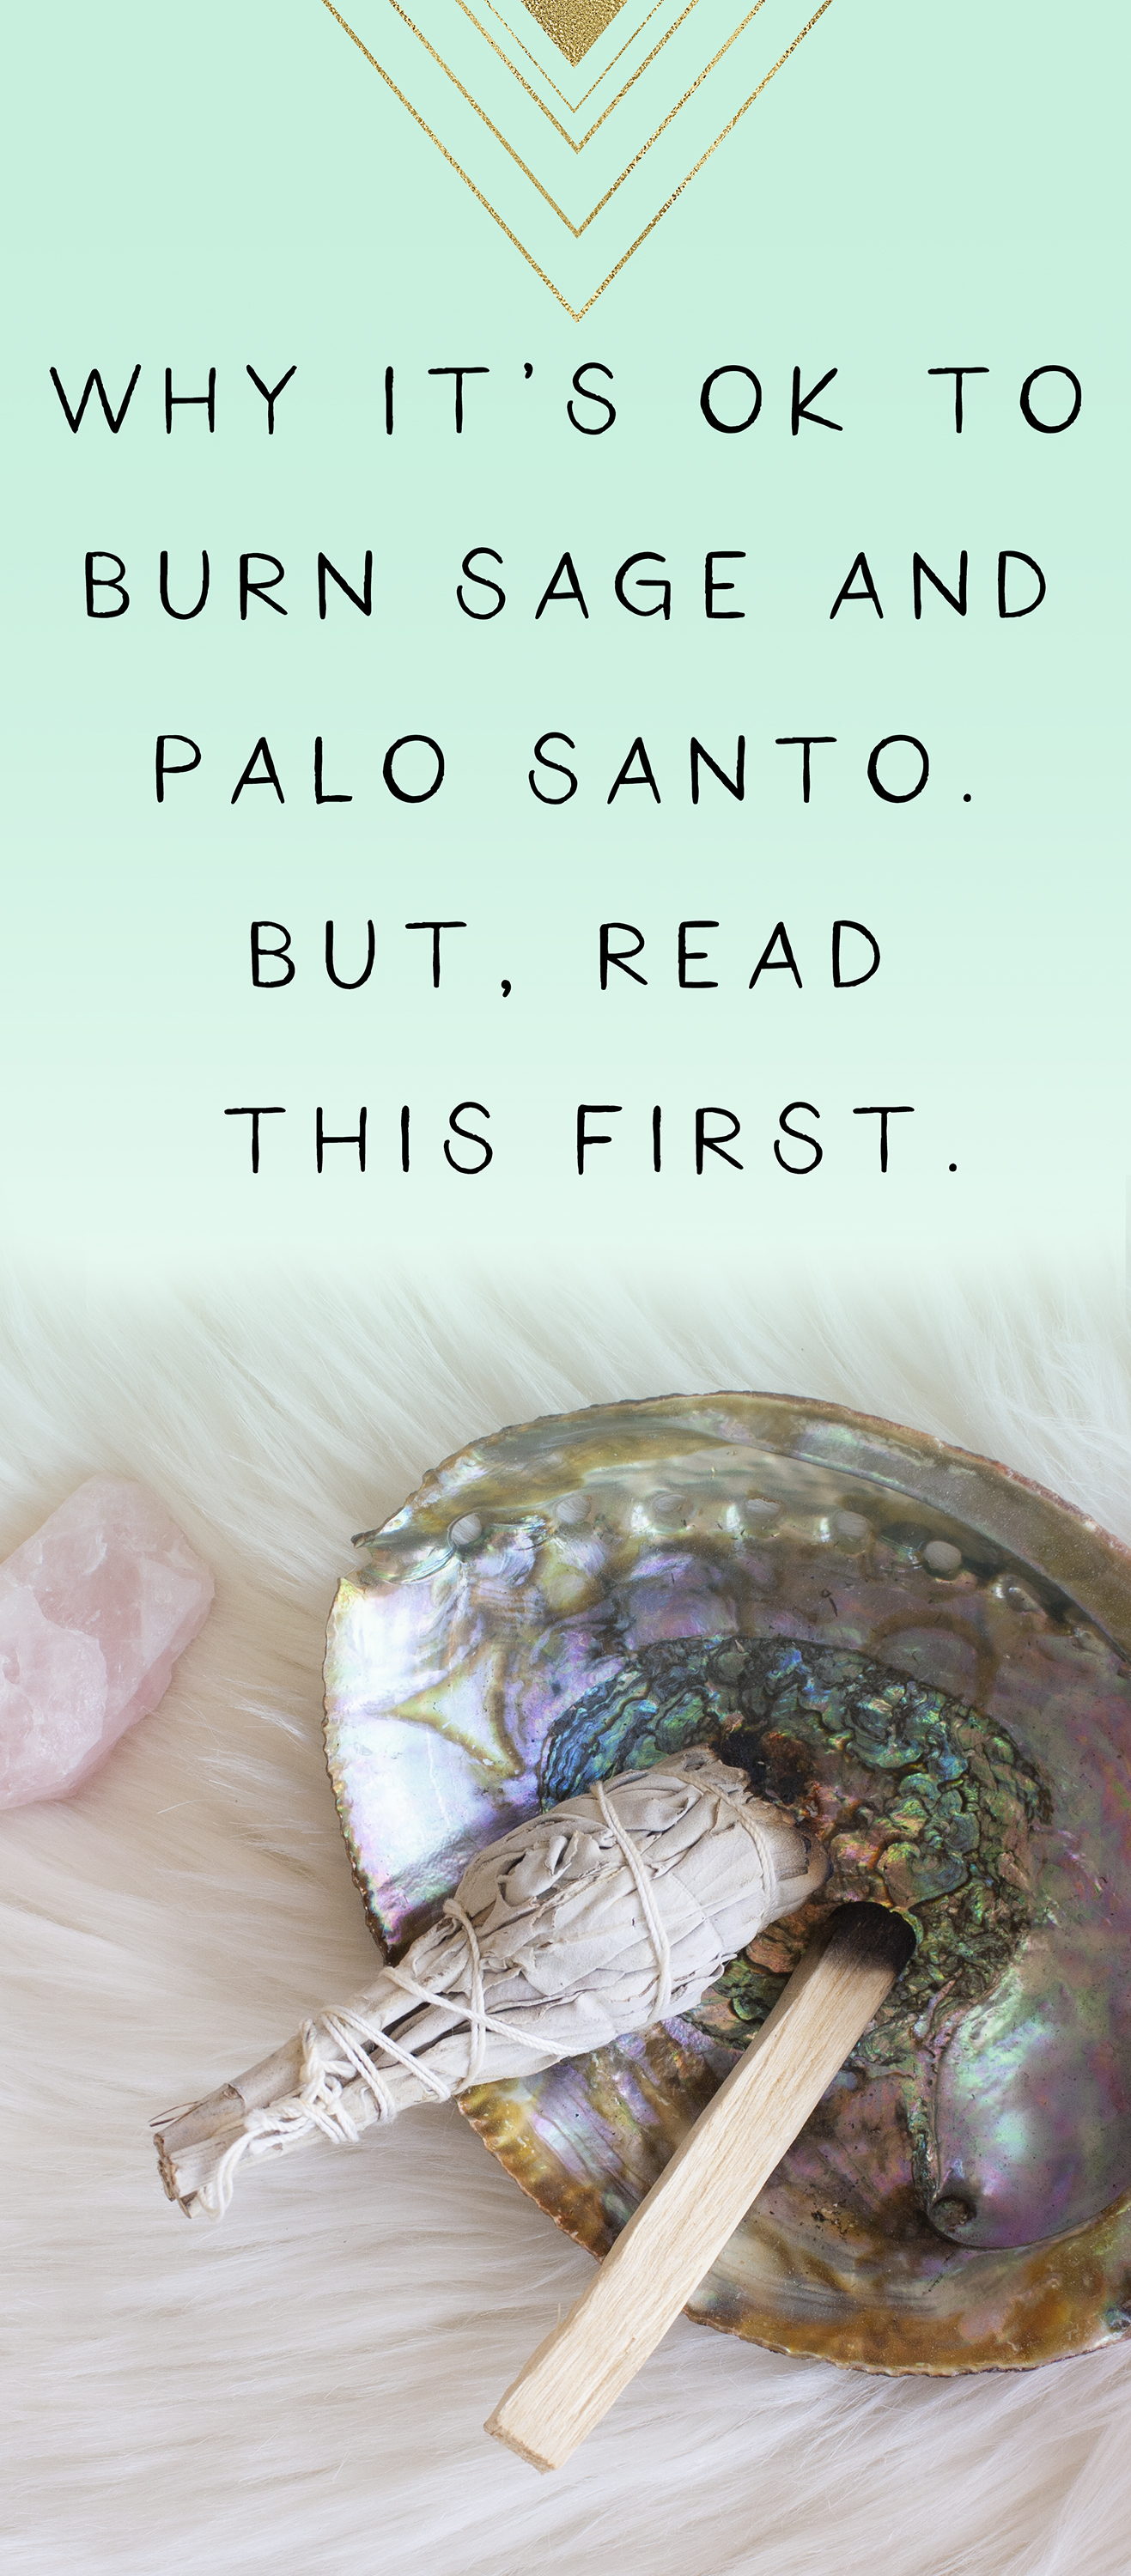 Pic2-read-before-burning-your-sage-and-palo-santo